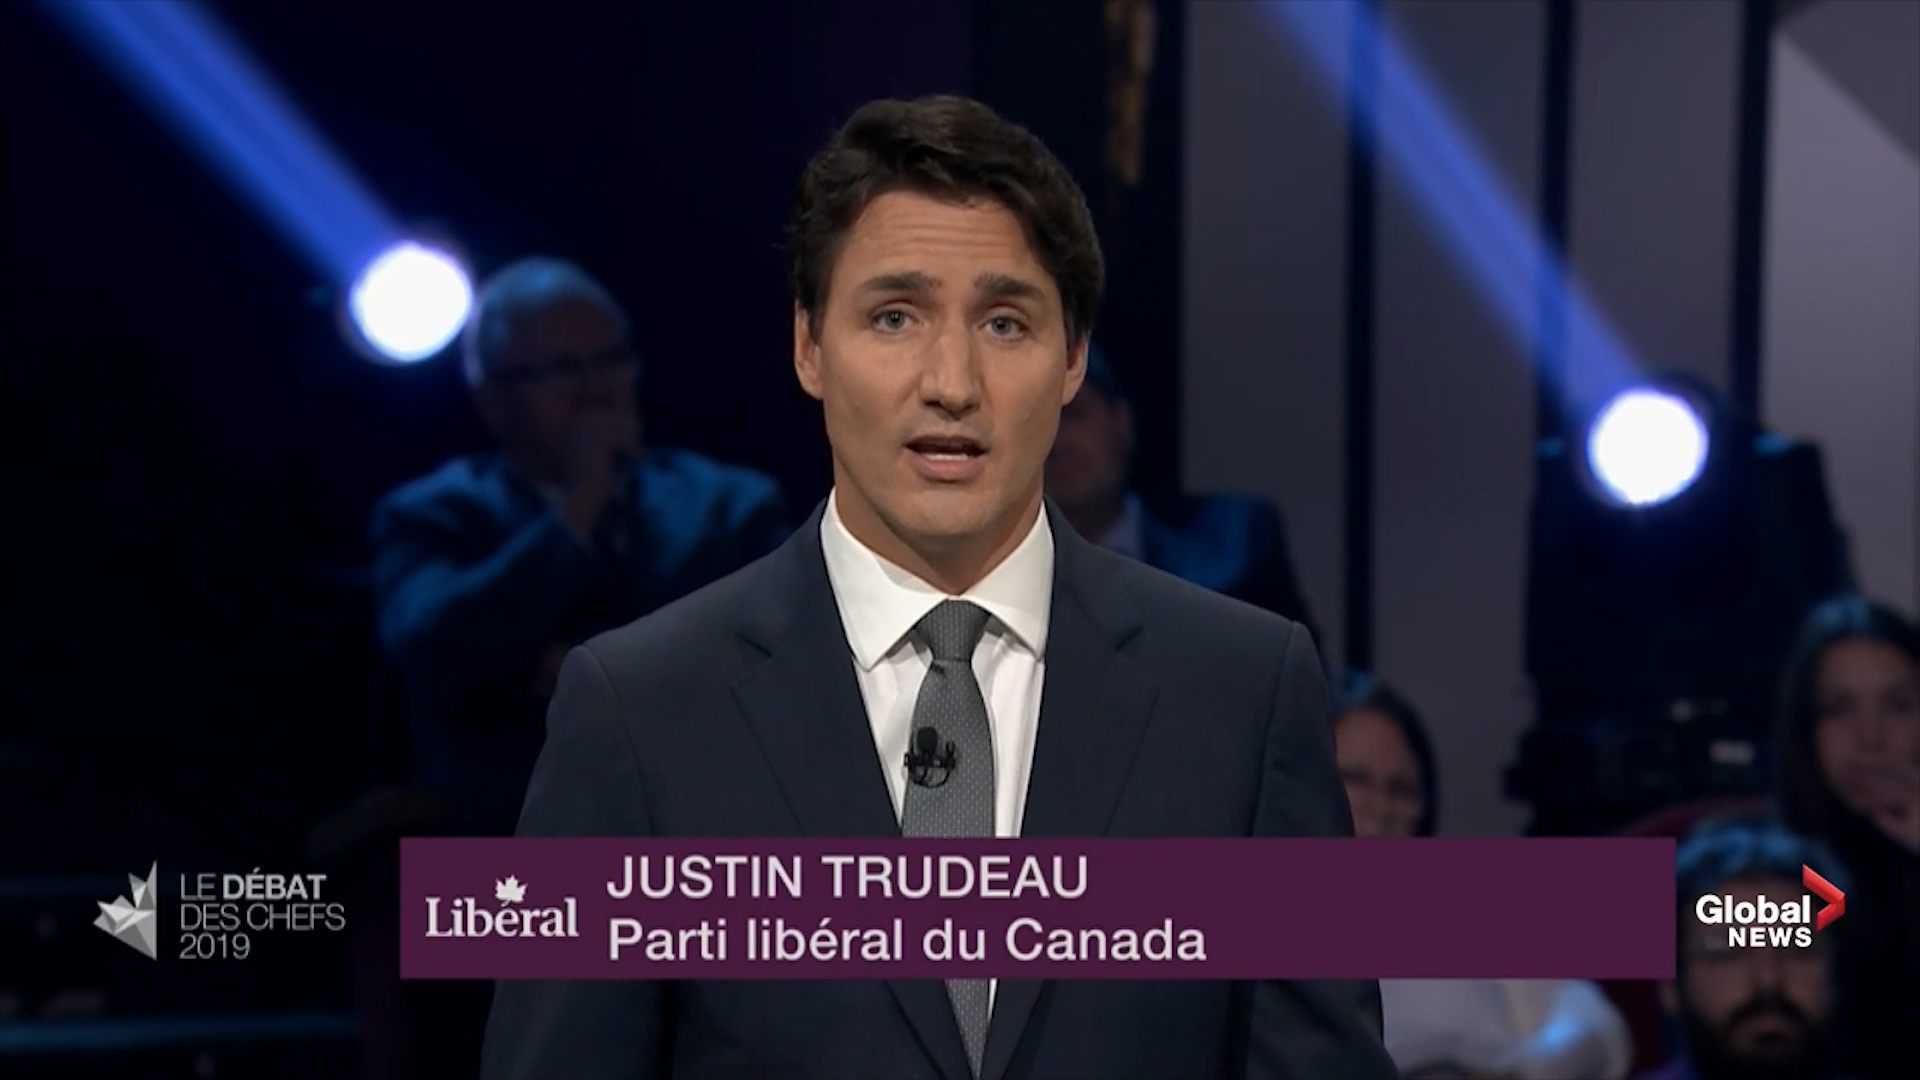 Leader's Debate: Trudeau says Canada must stand up to 'oil barons' on climate change